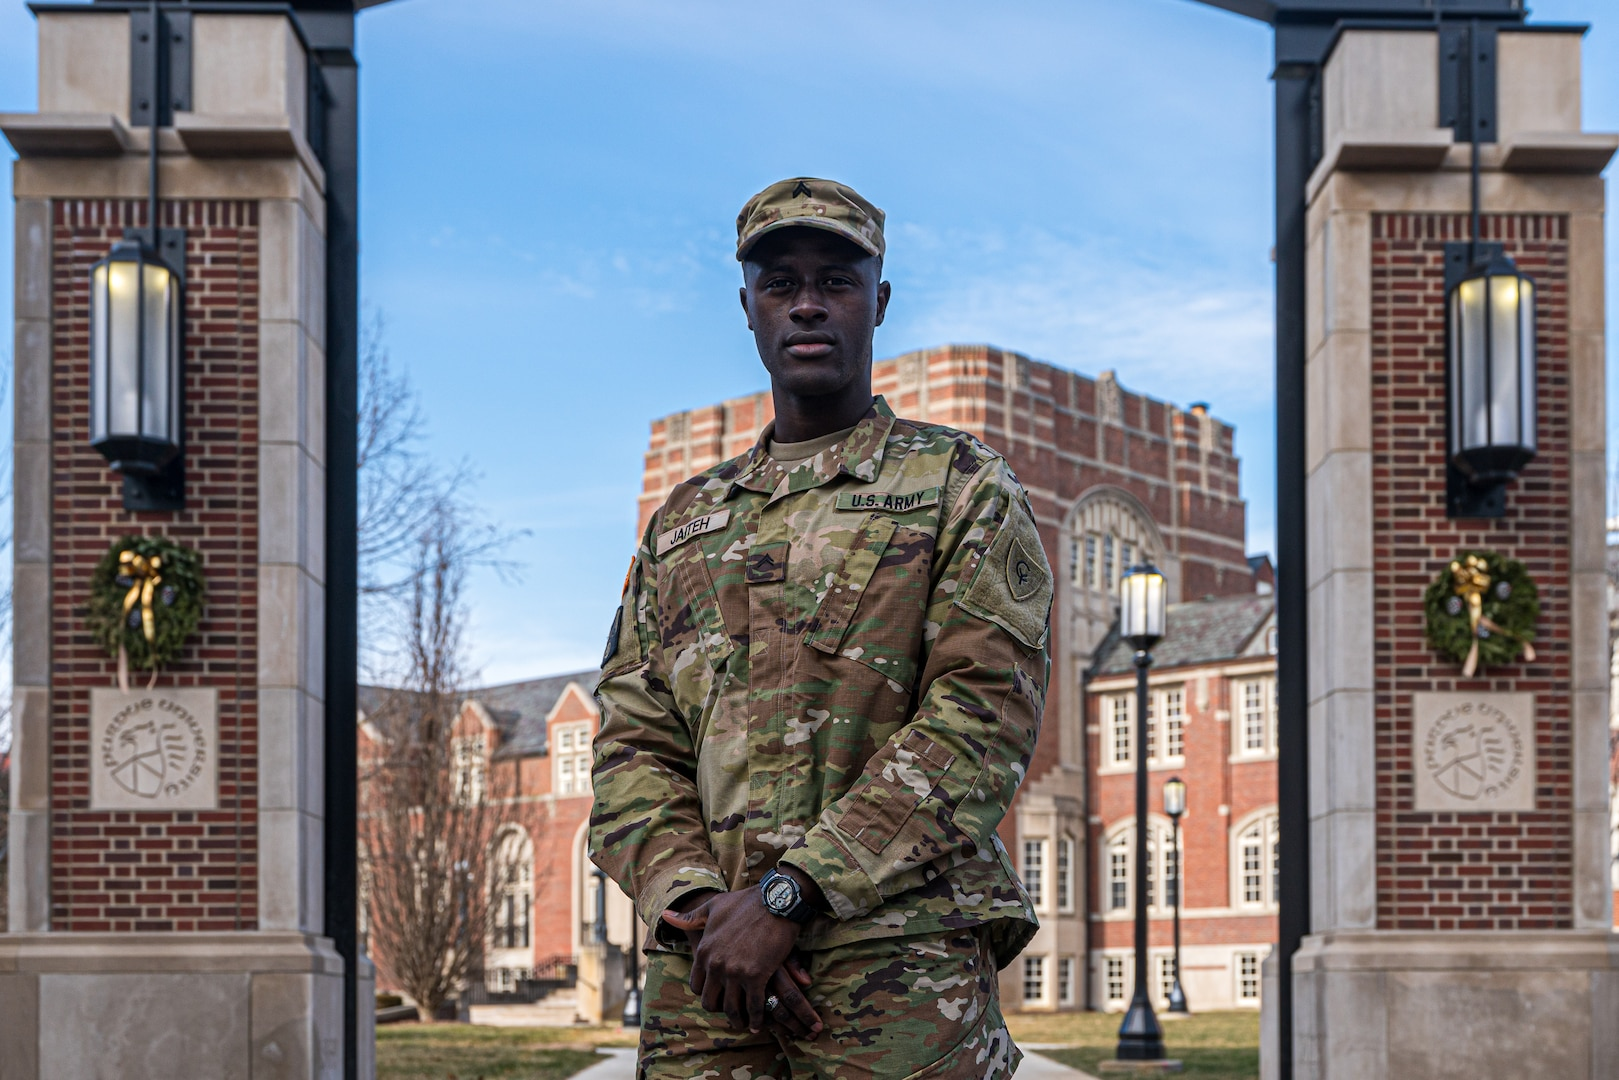 Cpl. Alhagie Jaiteh, a mechanic with the Indiana National Guard's 638th Aviation Support Battalion and a junior at Purdue University, immigrated to the United States at the age of 18 from his home country of The Gambia in search of the American dream. (Photo taken by Sgt. Joshua A. Syberg before updated policy changes regarding masks)